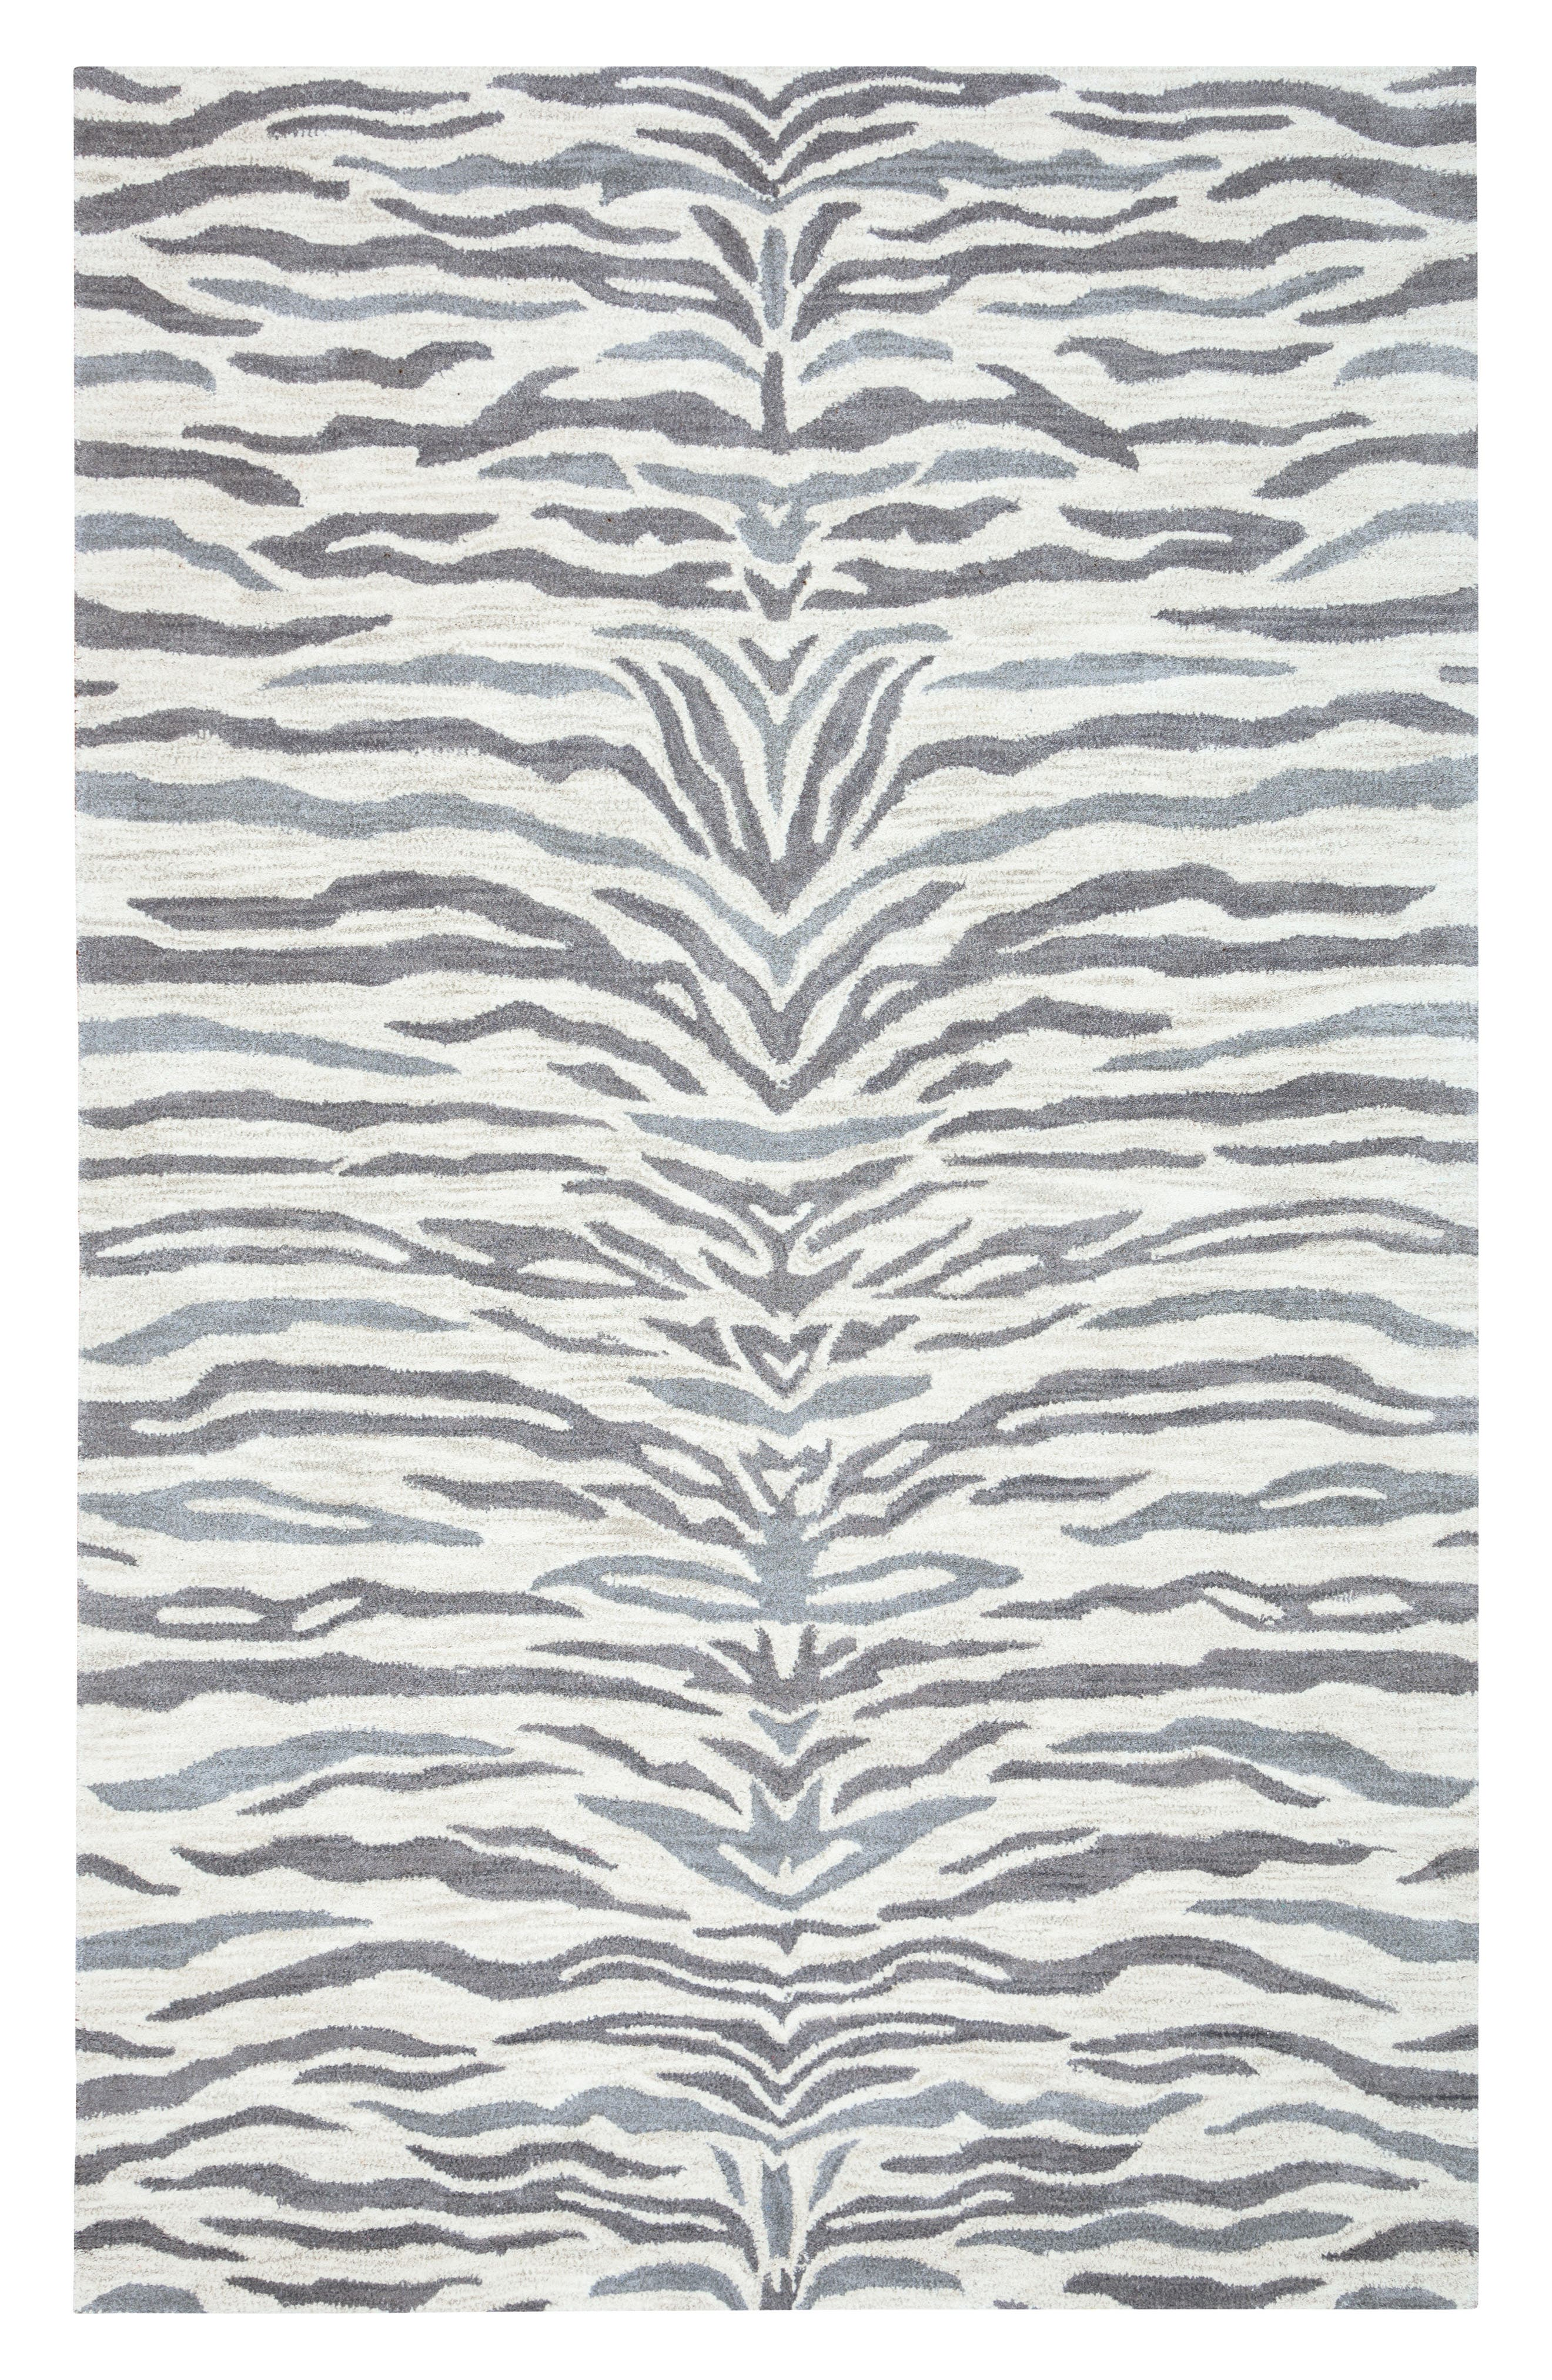 Alternate Image 1 Selected - Rizzy Home 'Valintino Zebra' Hand Tufted Wool Area Rug